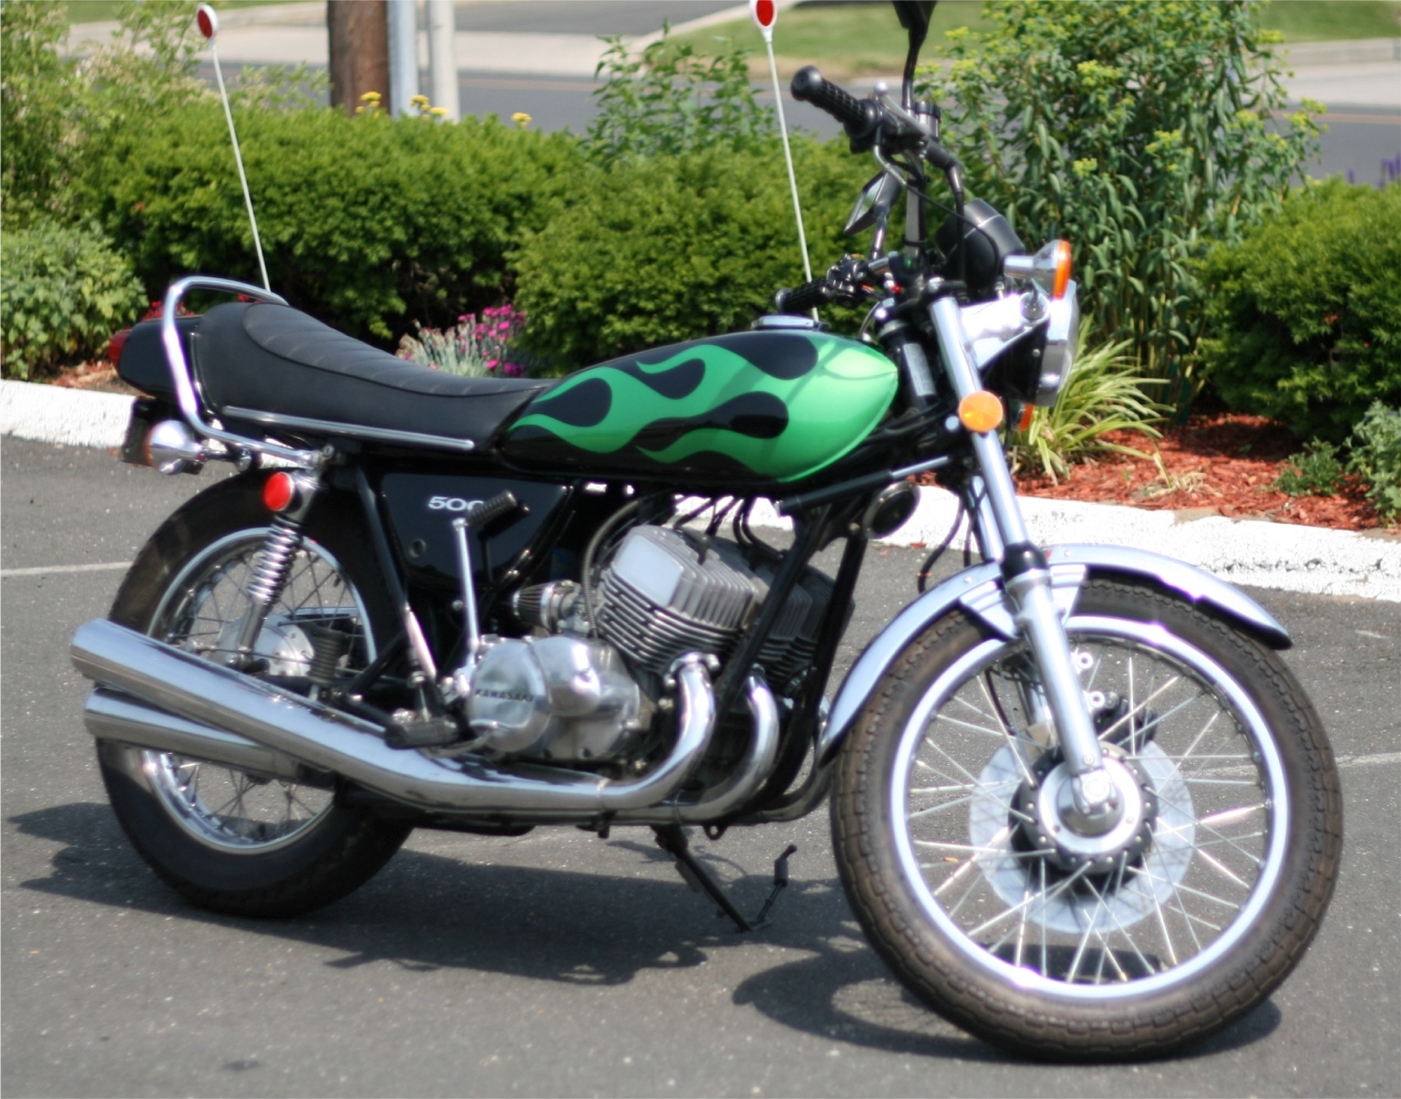 Fairfield County Cycles - Motorcycle Restorations, Repairs